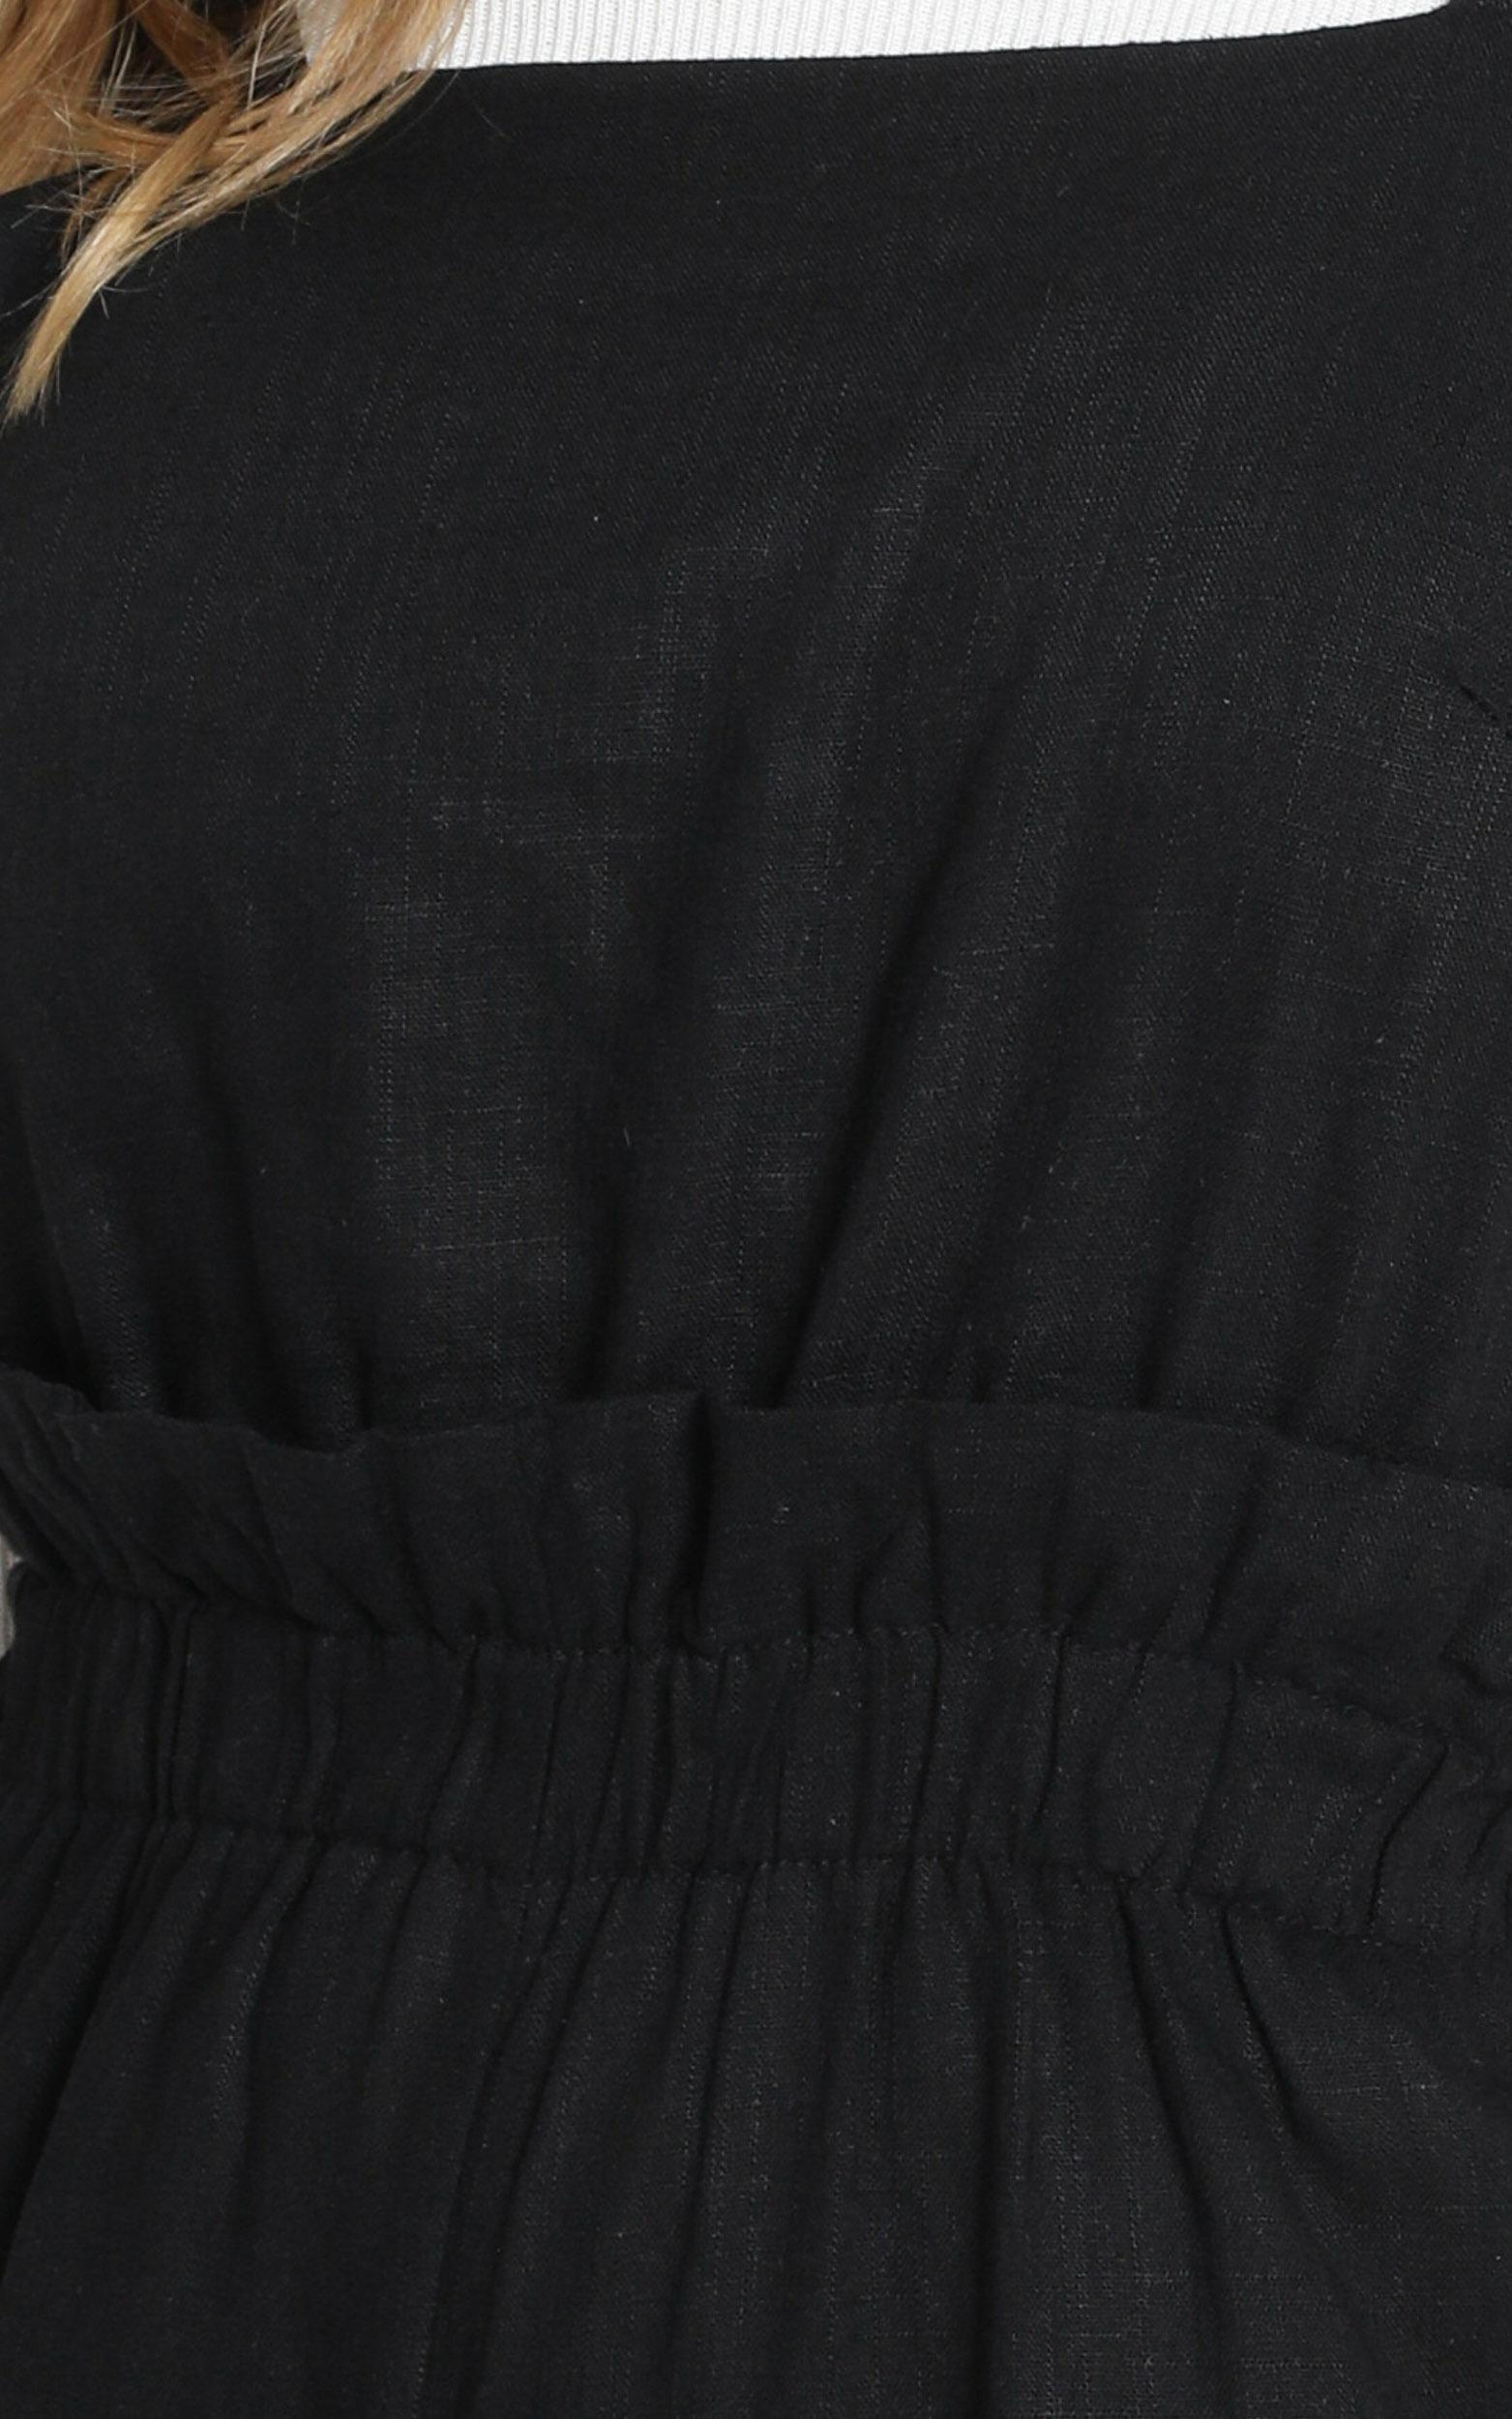 Keeping the momentum Jumpsuit in black linen look - 14 (XL), Black, hi-res image number null